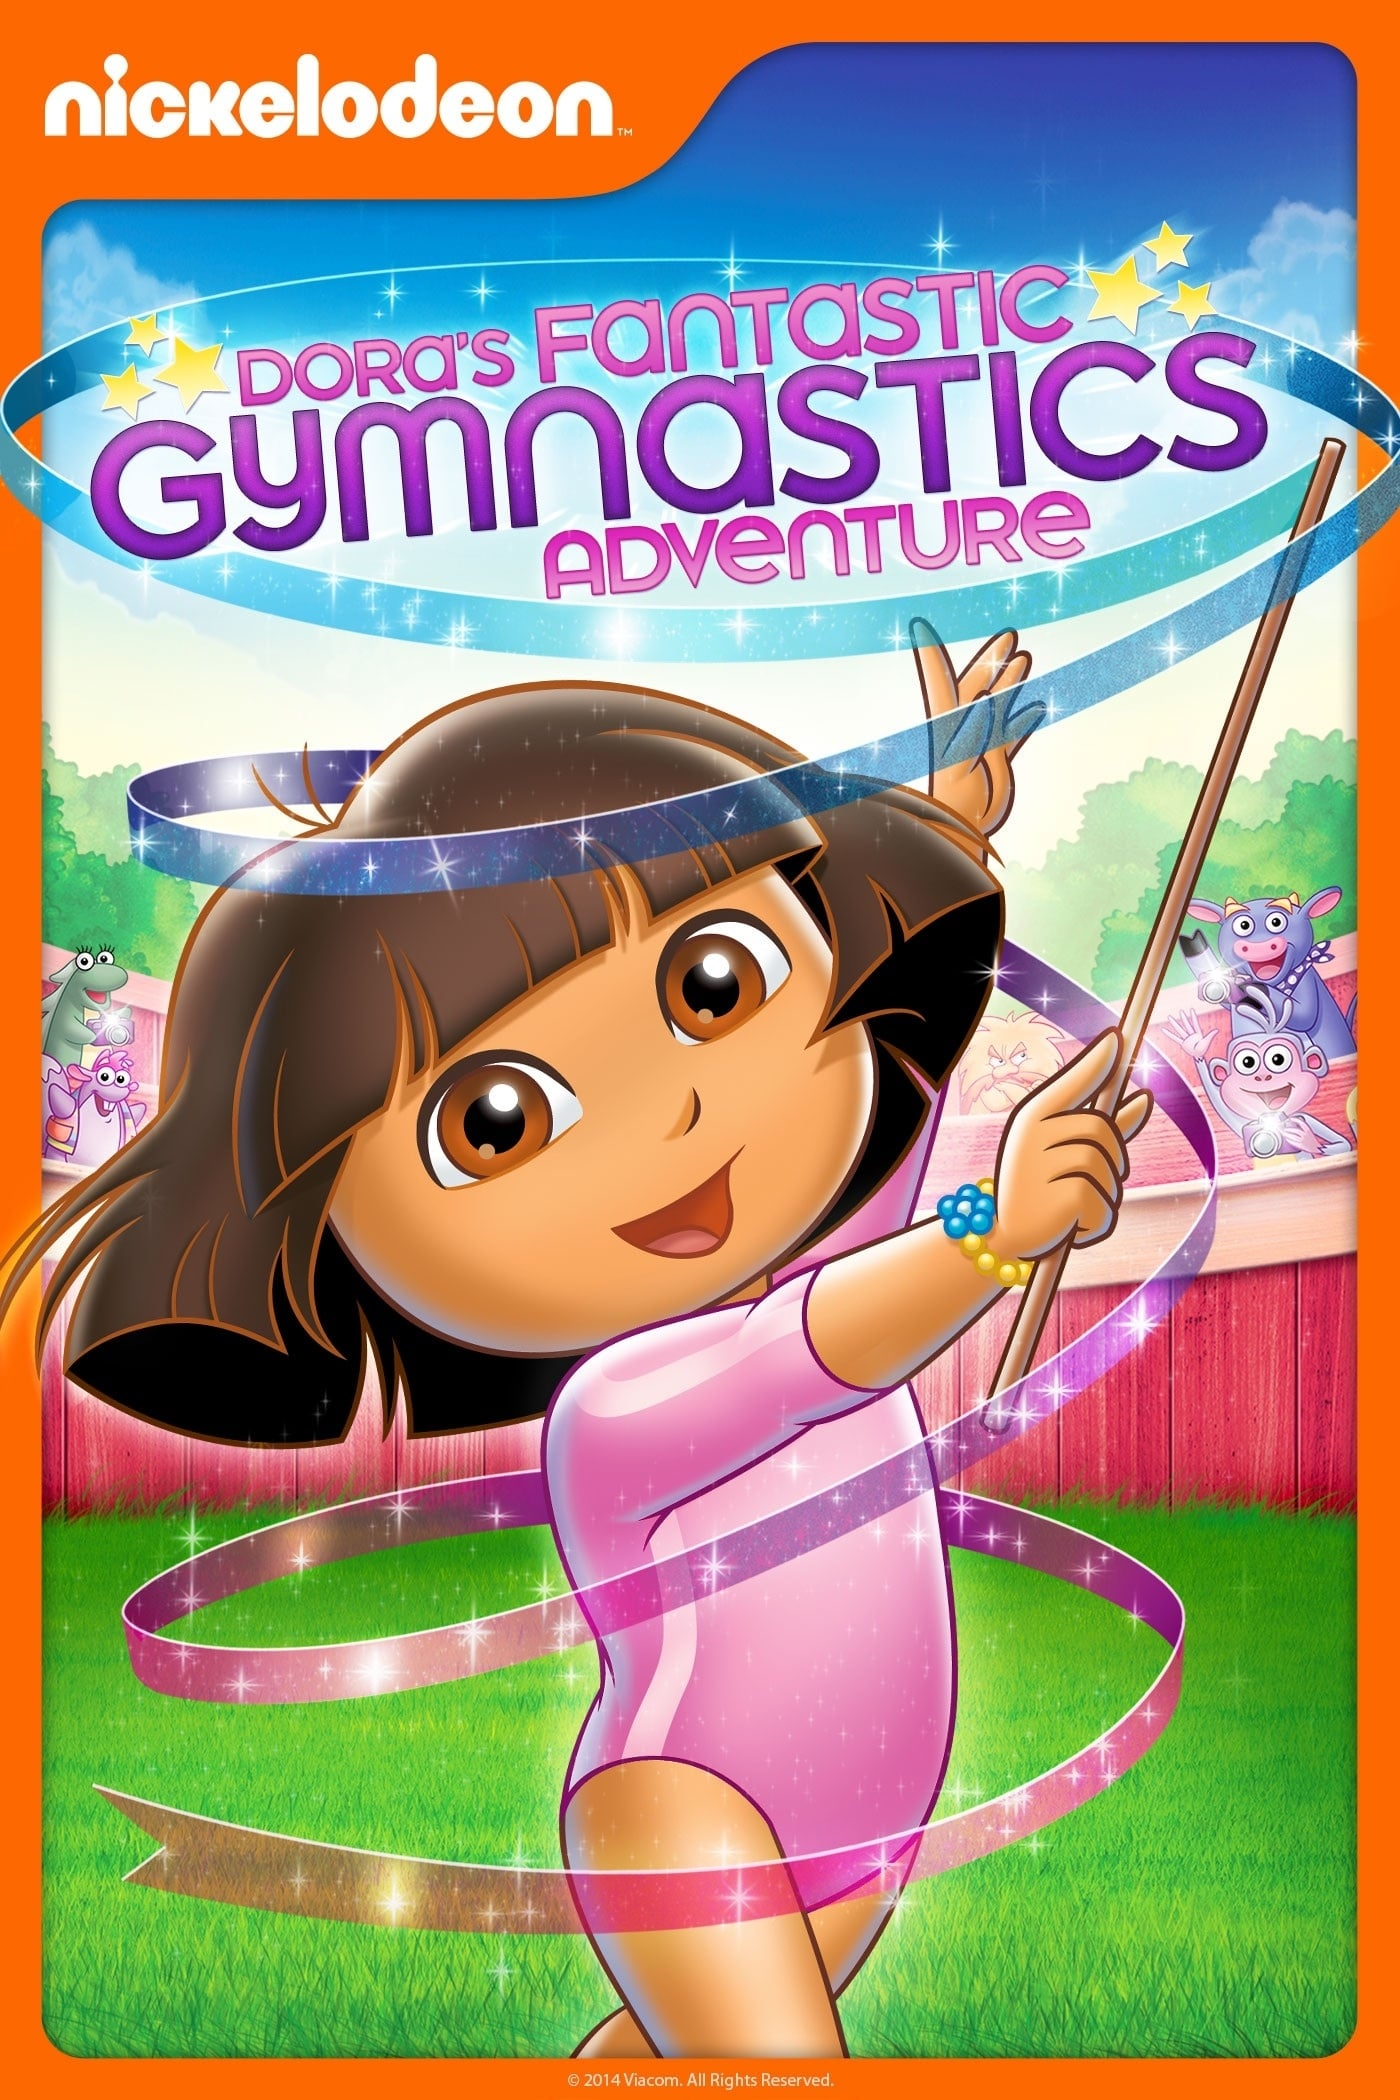 Dora the Explorer: Dora's Fantastic Gymnastics Adventure (2012)